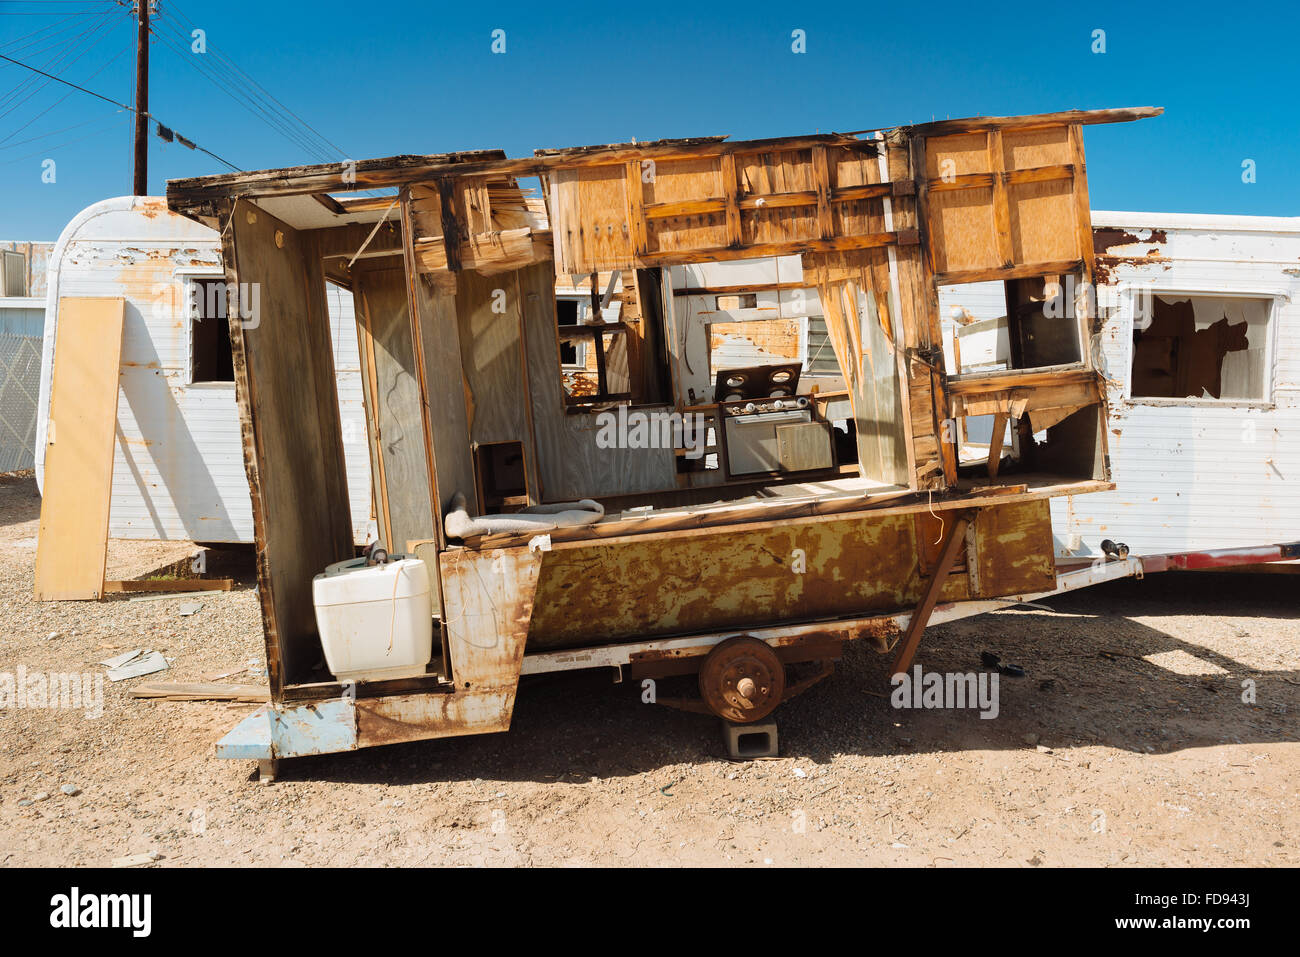 An abandoned camping trailer in Bombay Beach, California, on the eastern shore of the Salton Sea - Stock Image